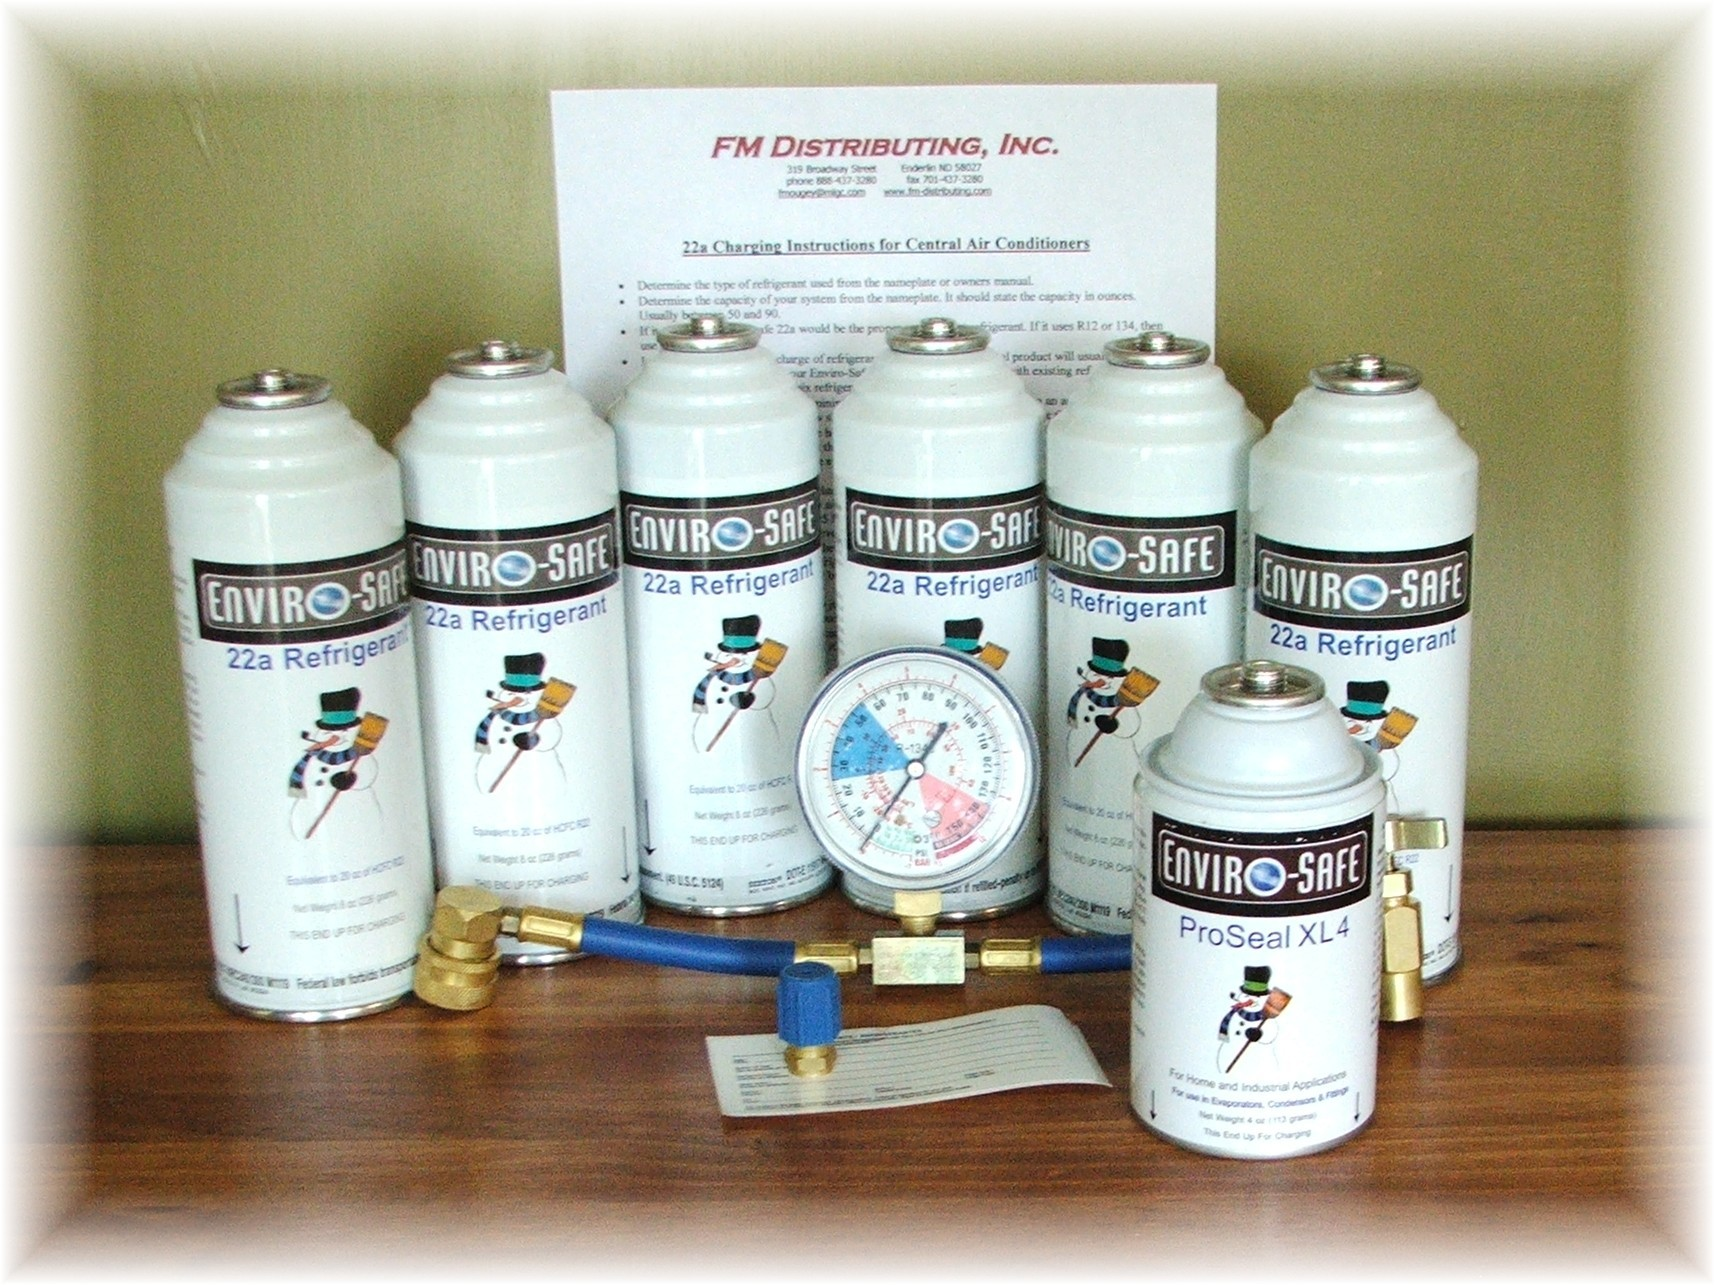 R290 Large Charge & Seal Kit (Includes 6 cans of R290, 1 ProSeal XL, 1 Low Side Gauge W/Hose & Can Tap, & 1 Low Side Adapter)